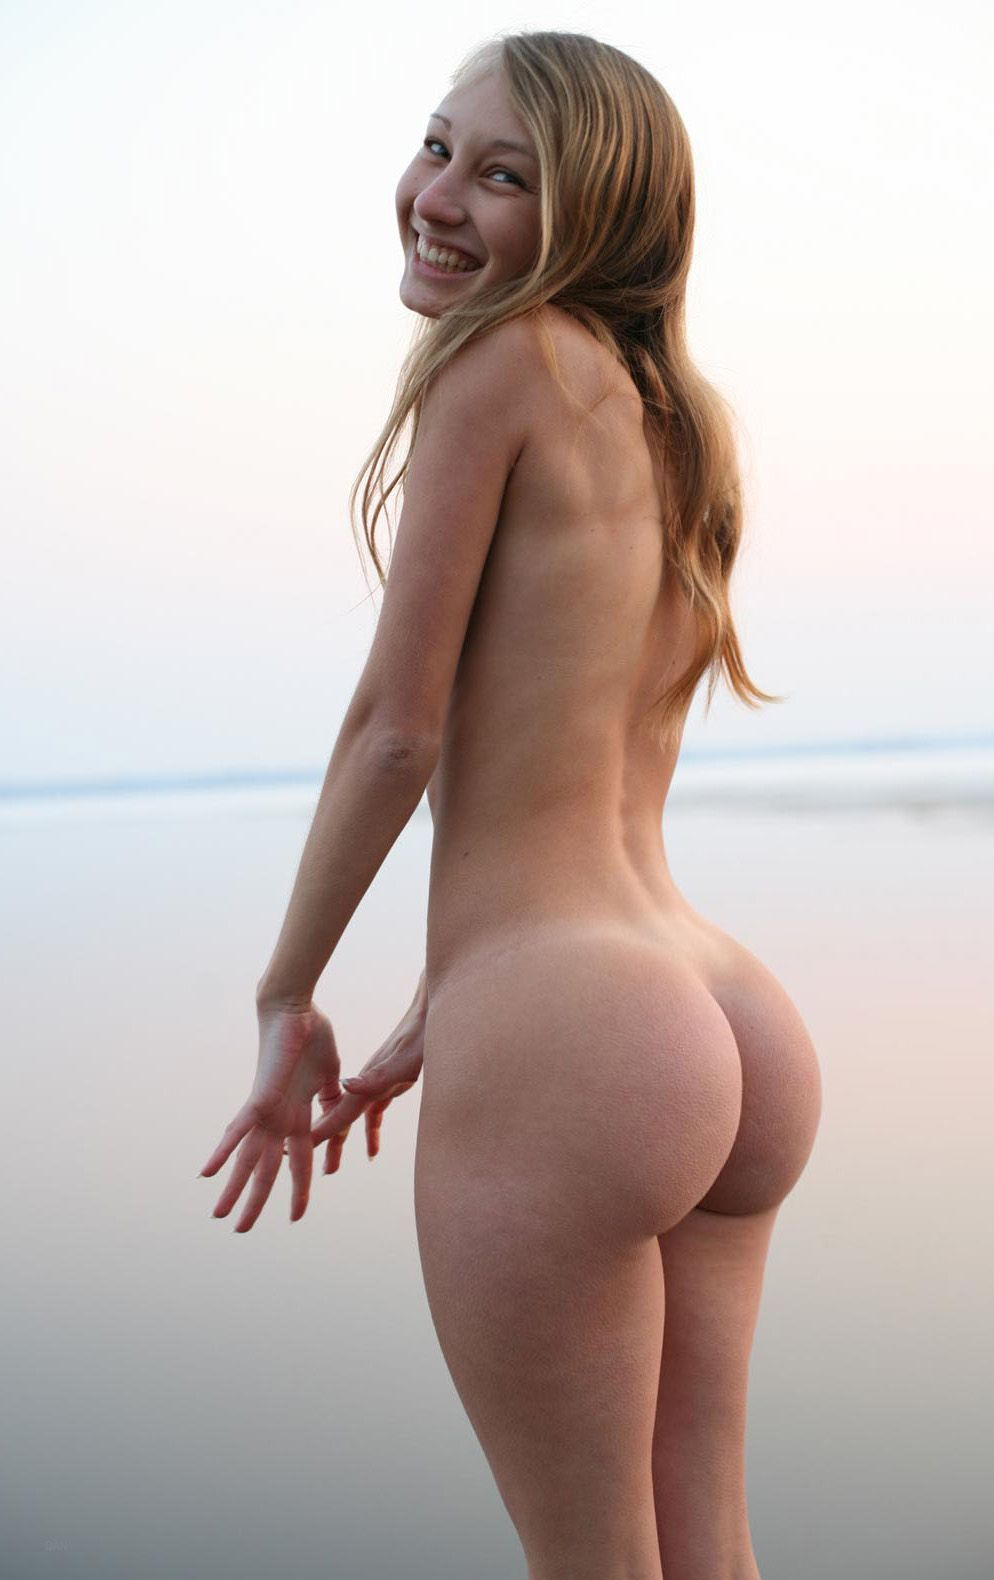 In Between My Ass Cheeks Skinny PAWG with Bubble Butt Booty Thick Nipples.